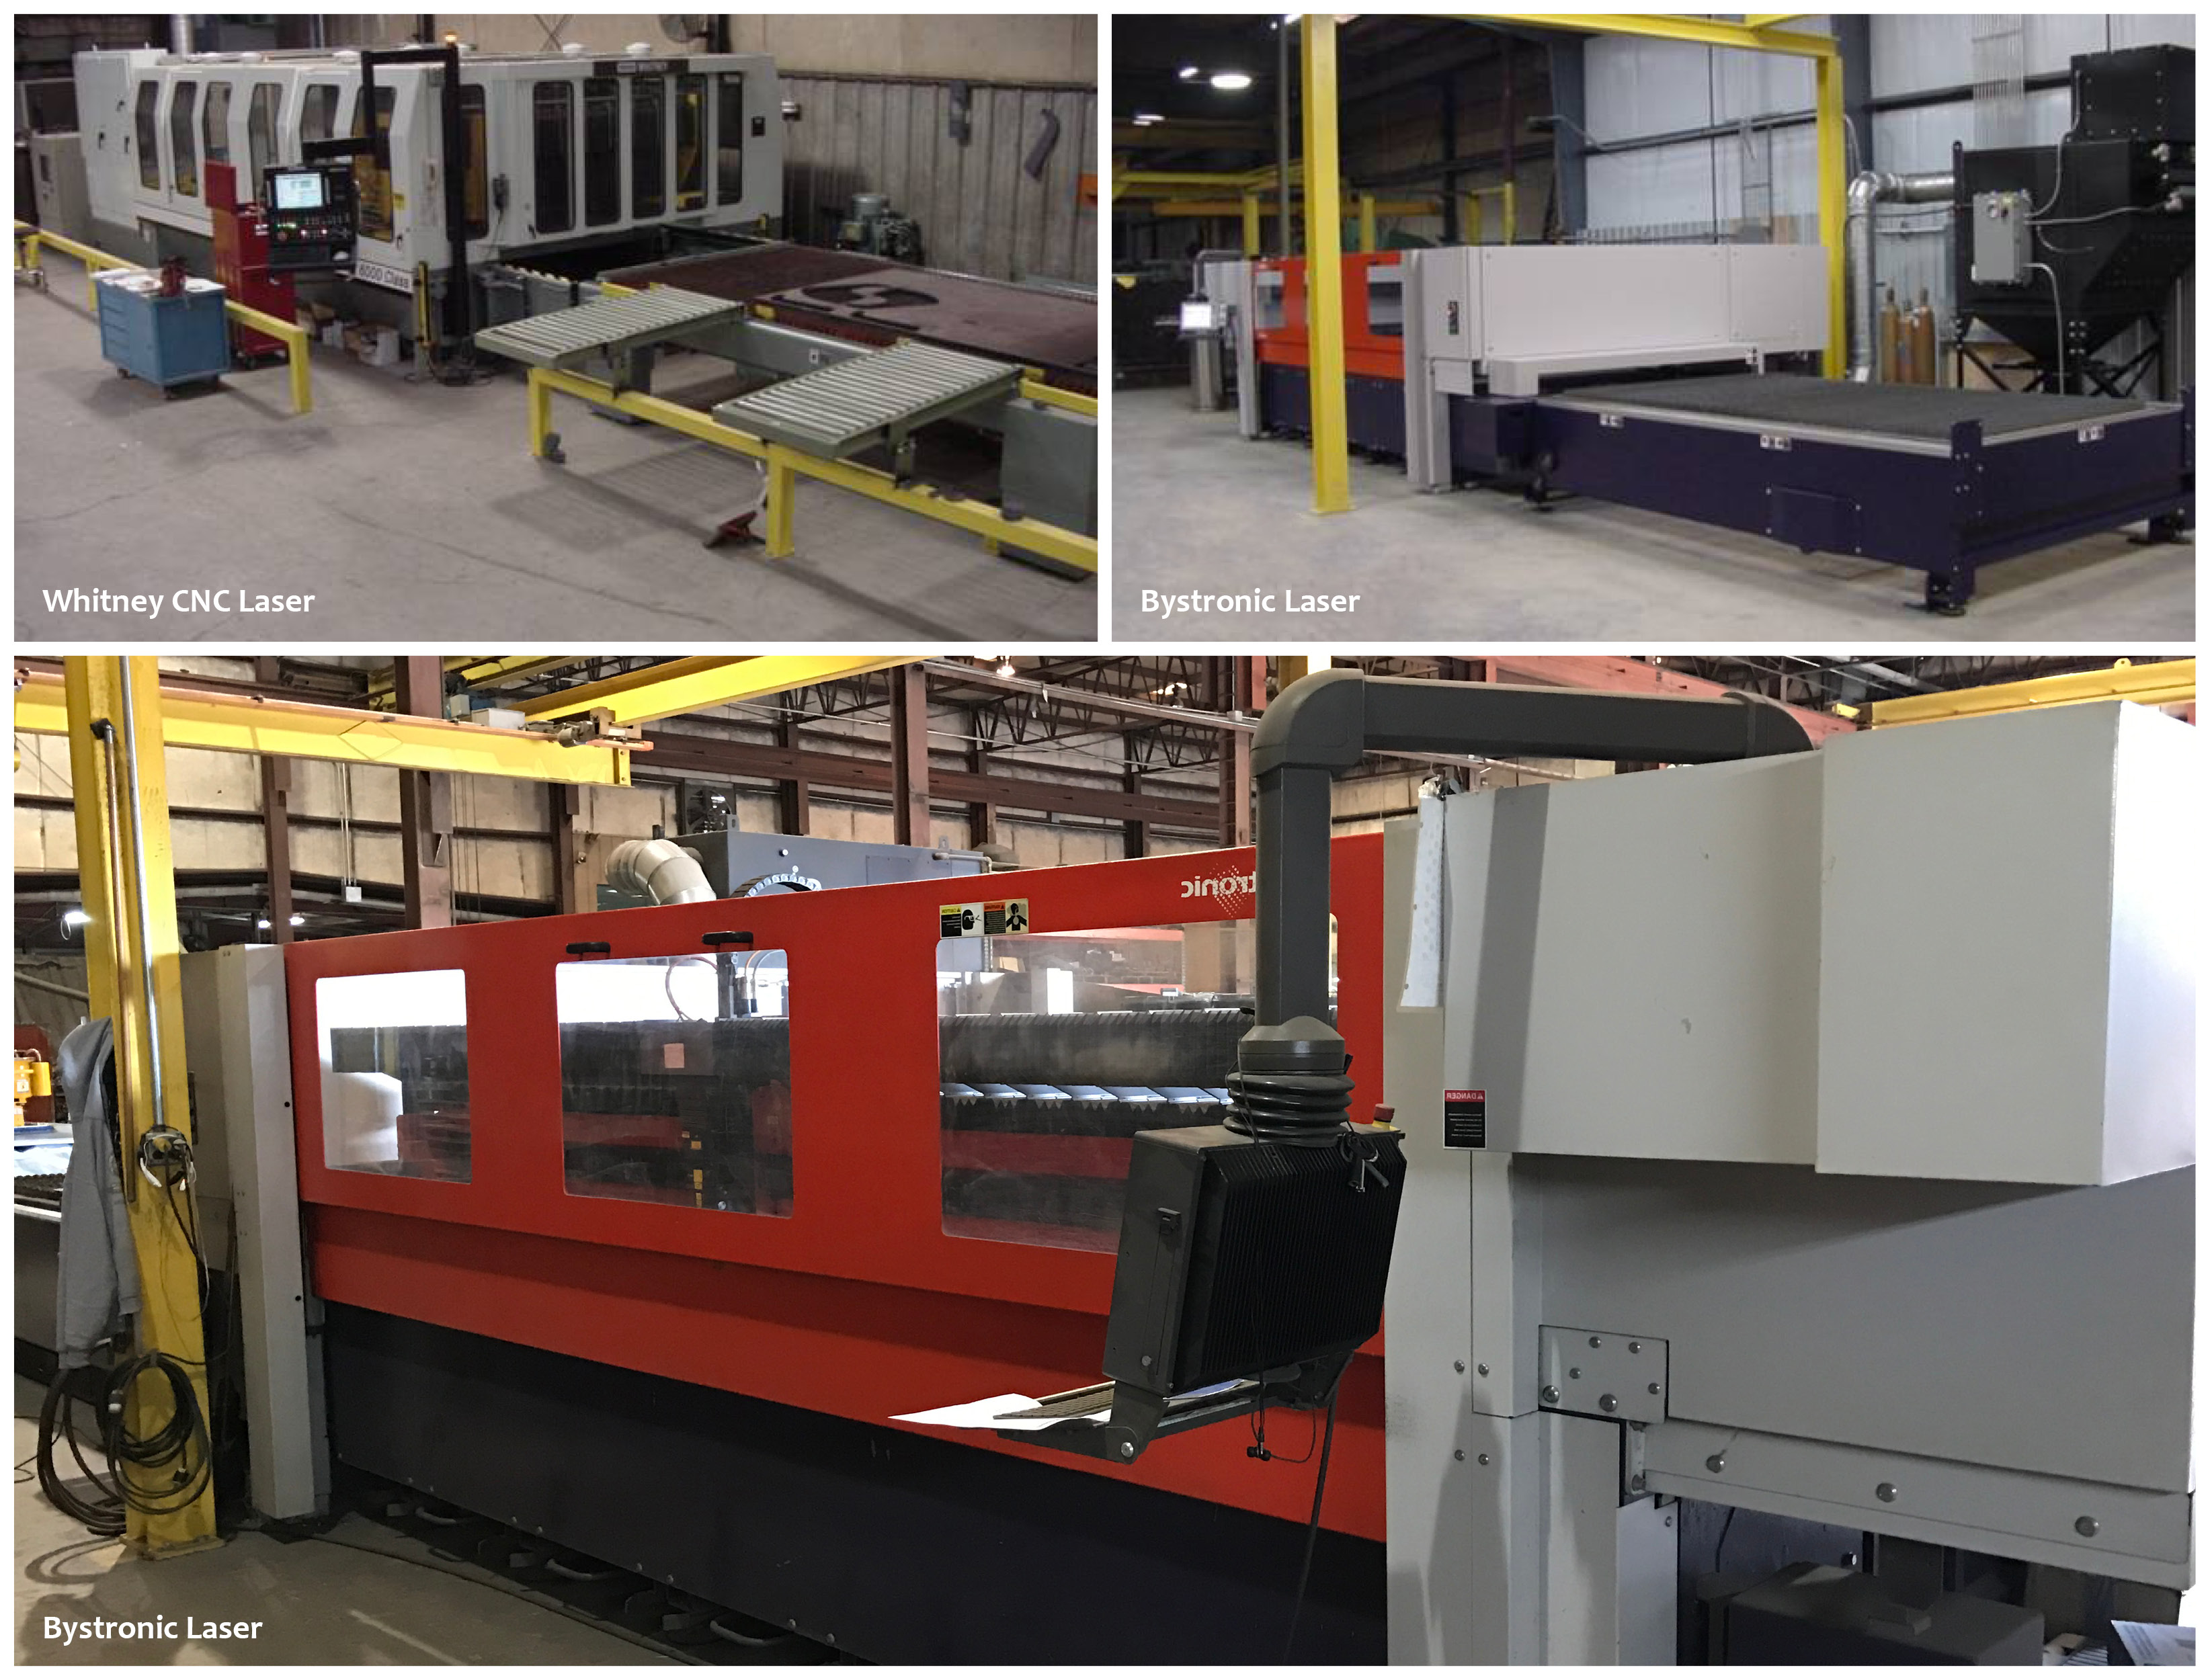 Bystronic Lasers, Whitney CNC Laser